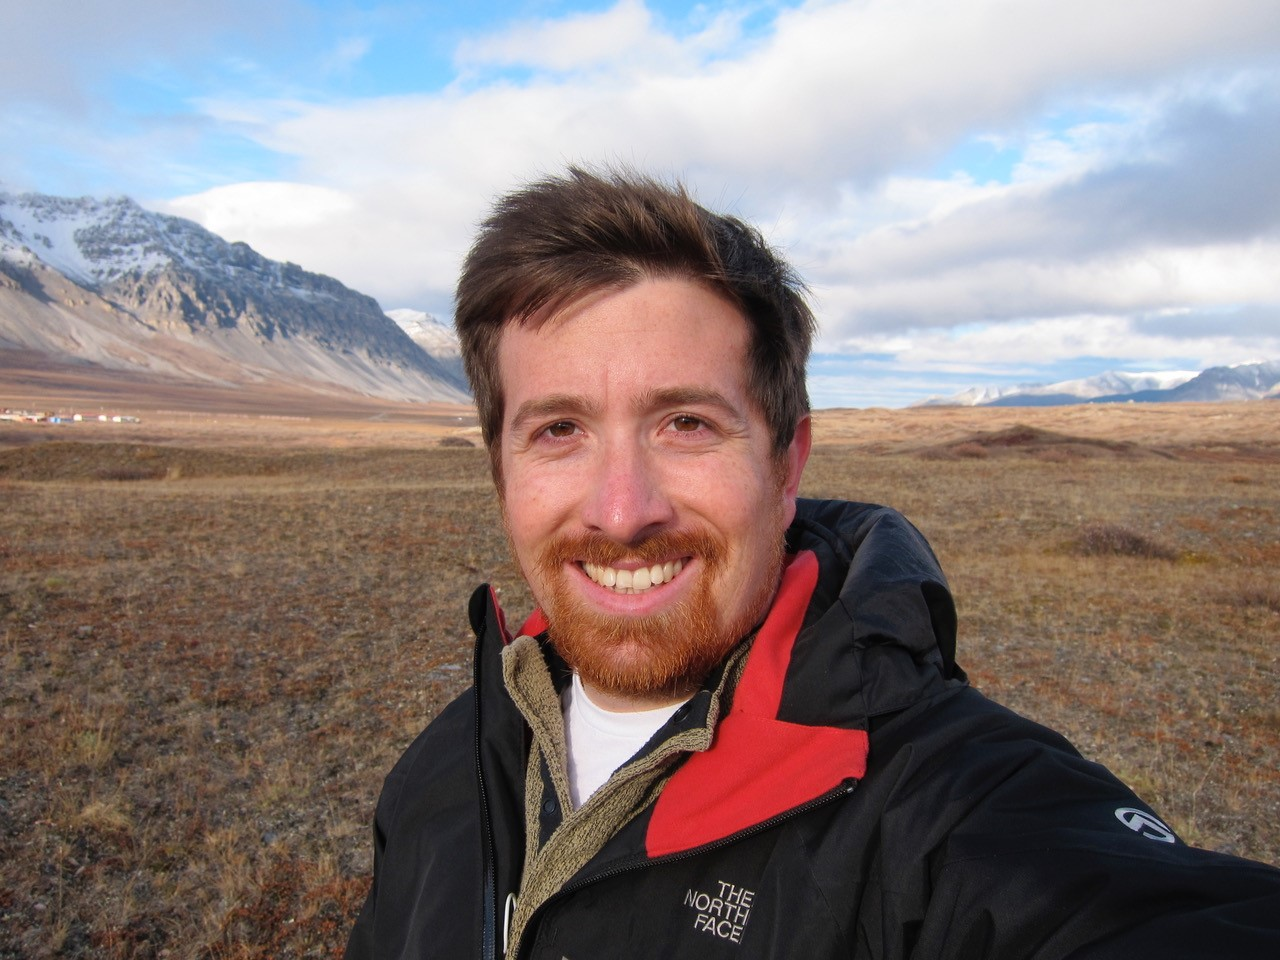 Building Swimming Pools and Relationships in the Arctic Circle with Paul Graves